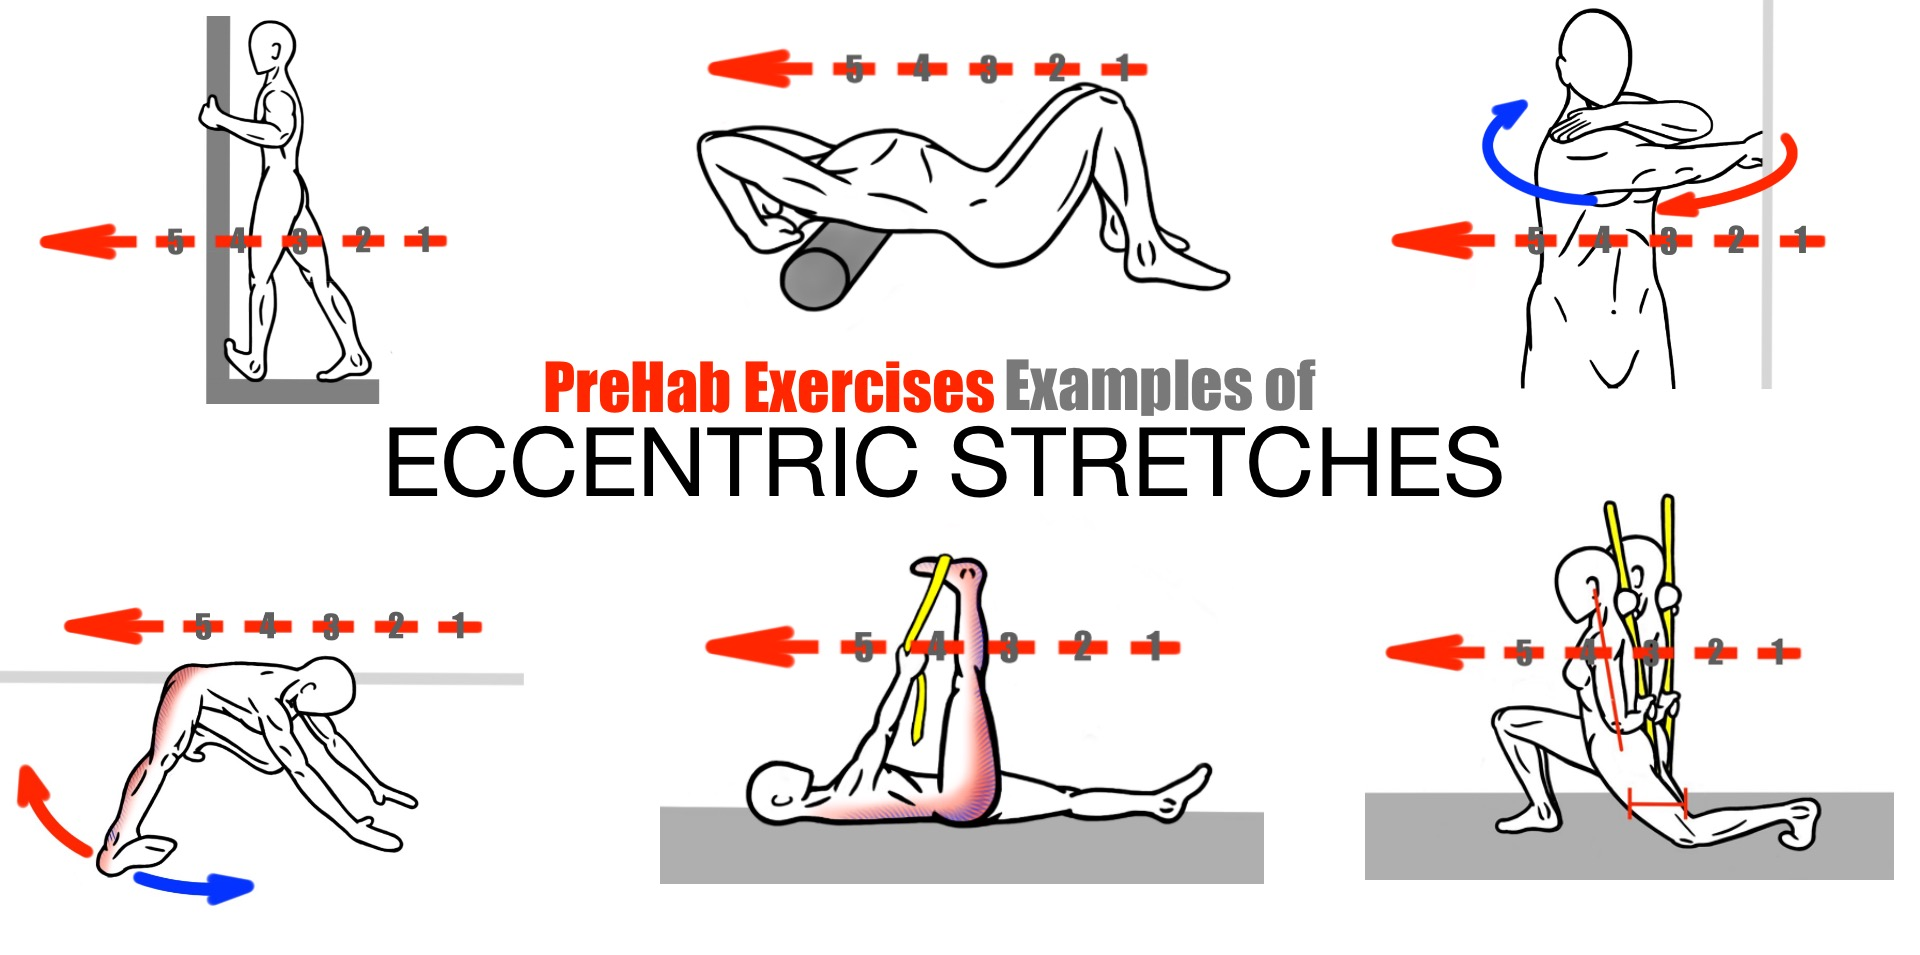 PreHab Exercises - Examples of Eccentric Stretching - Eccentric Stretches for Improved Mobility